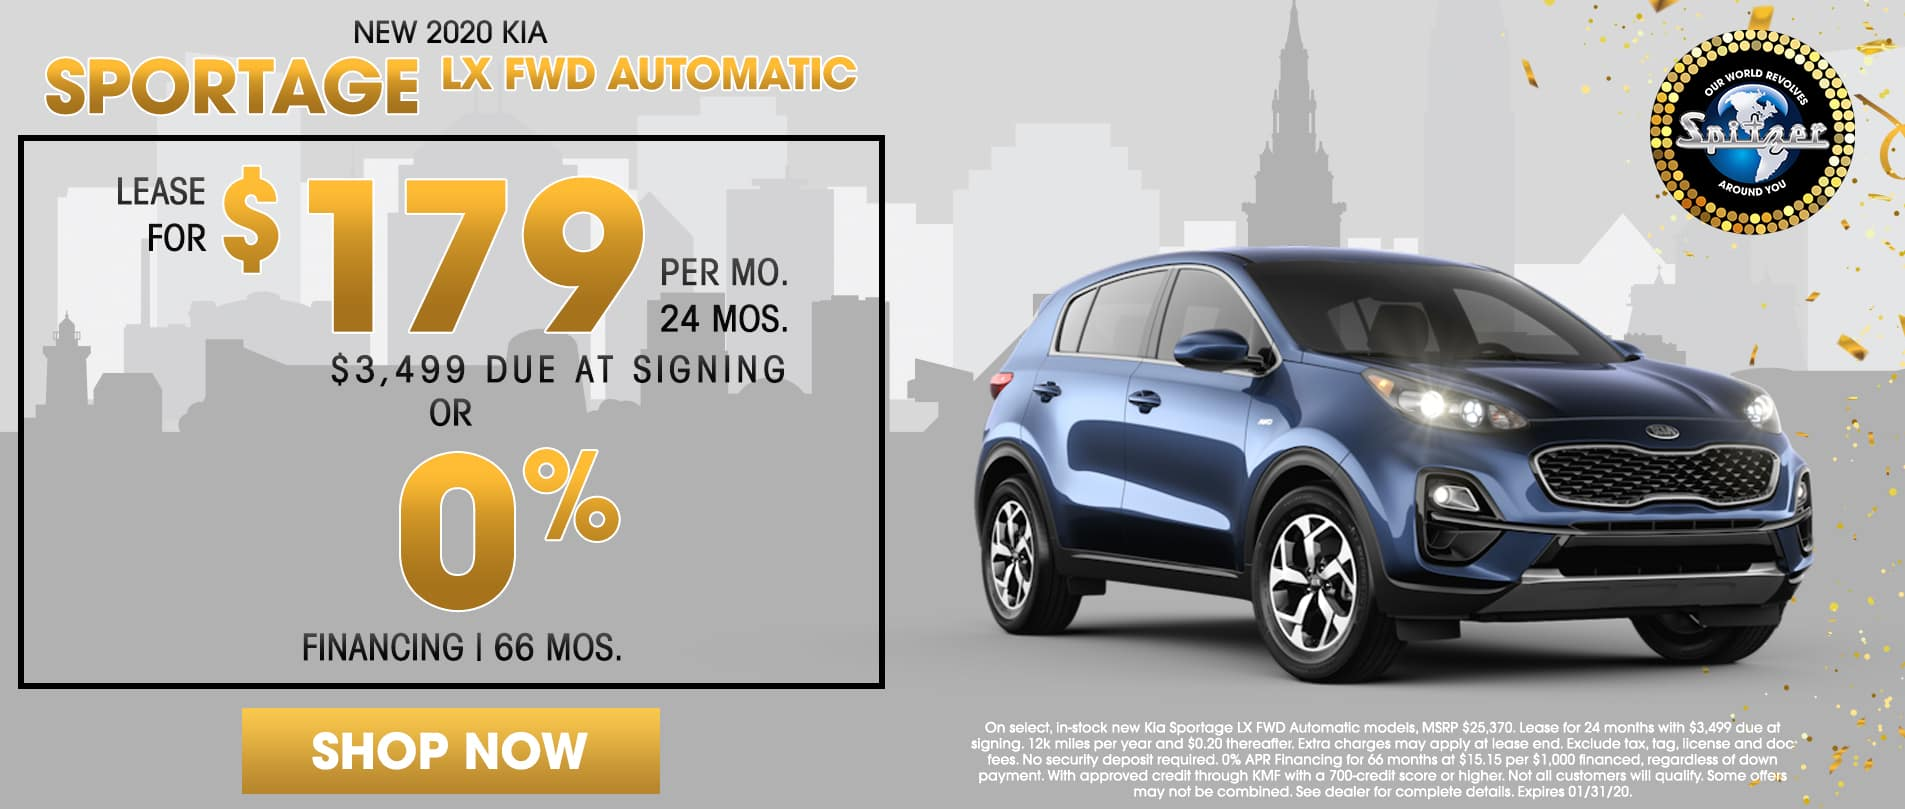 Sportage | Lease for $179 per mo / 0% financing for 66 mos